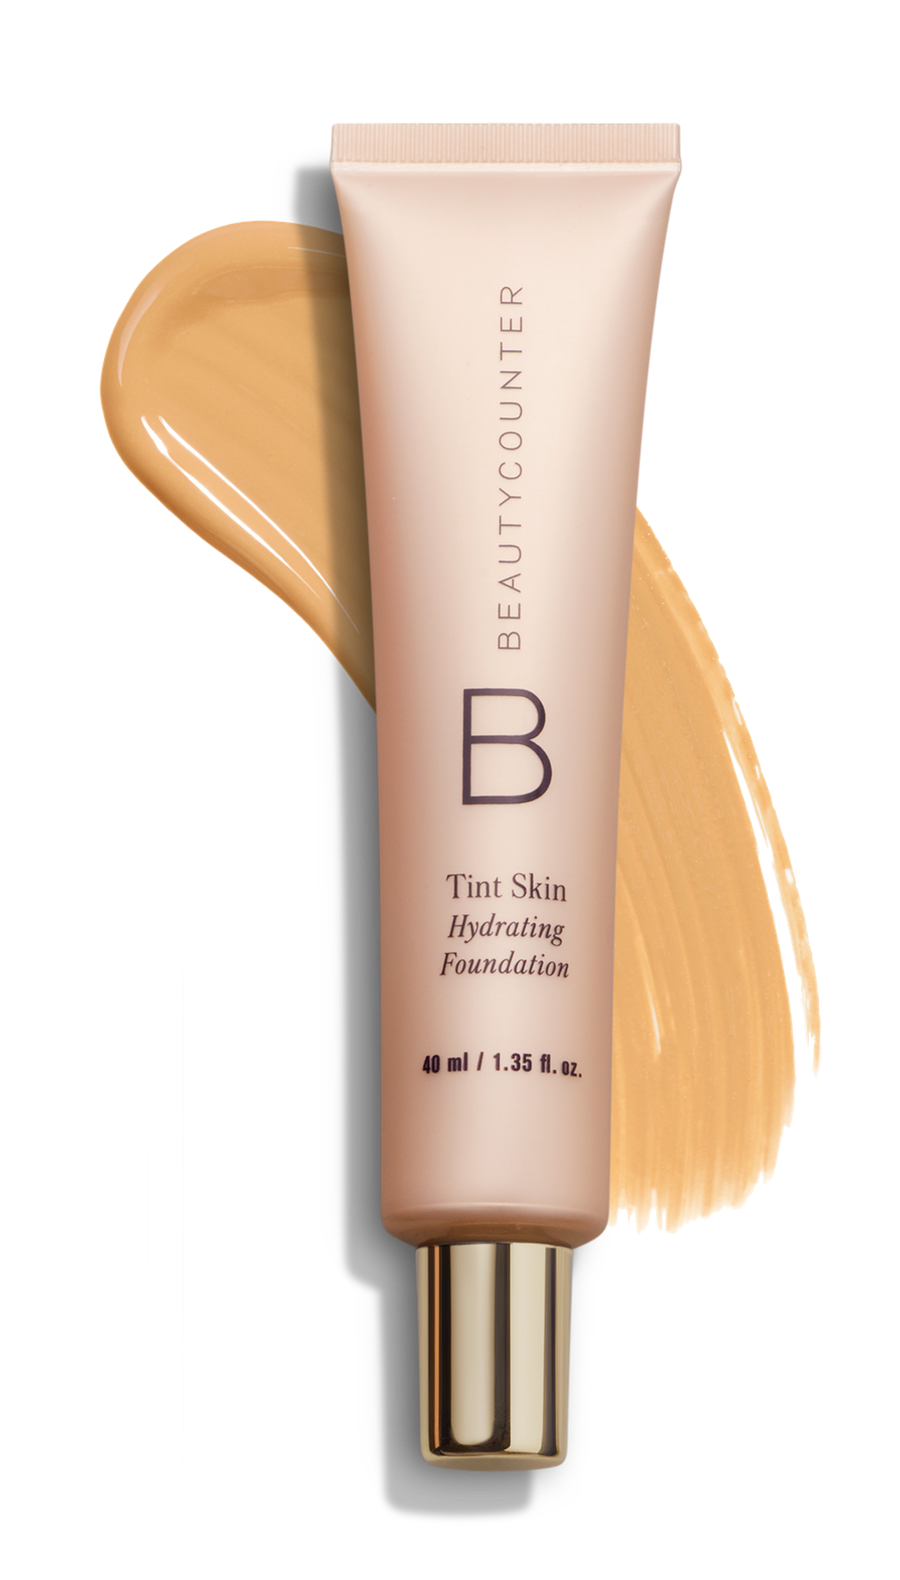 TINT SKIN HYDRATING FOUNDATION(SHADE: SAND) - A light/medium buildable coverage that leaves your skin still looking and feeling like skin. It has a slight matte finish so I like to mix this up with my Dew Skin Moisturizing Coverage. If I use this foundation alone, I don't use a setting powder. It applies well on both a brush and a makeup sponge, but I prefer using a sponge.CONS: If you use too much product it can look and feel a little cakey. Less is more. They don't have the best shade range.